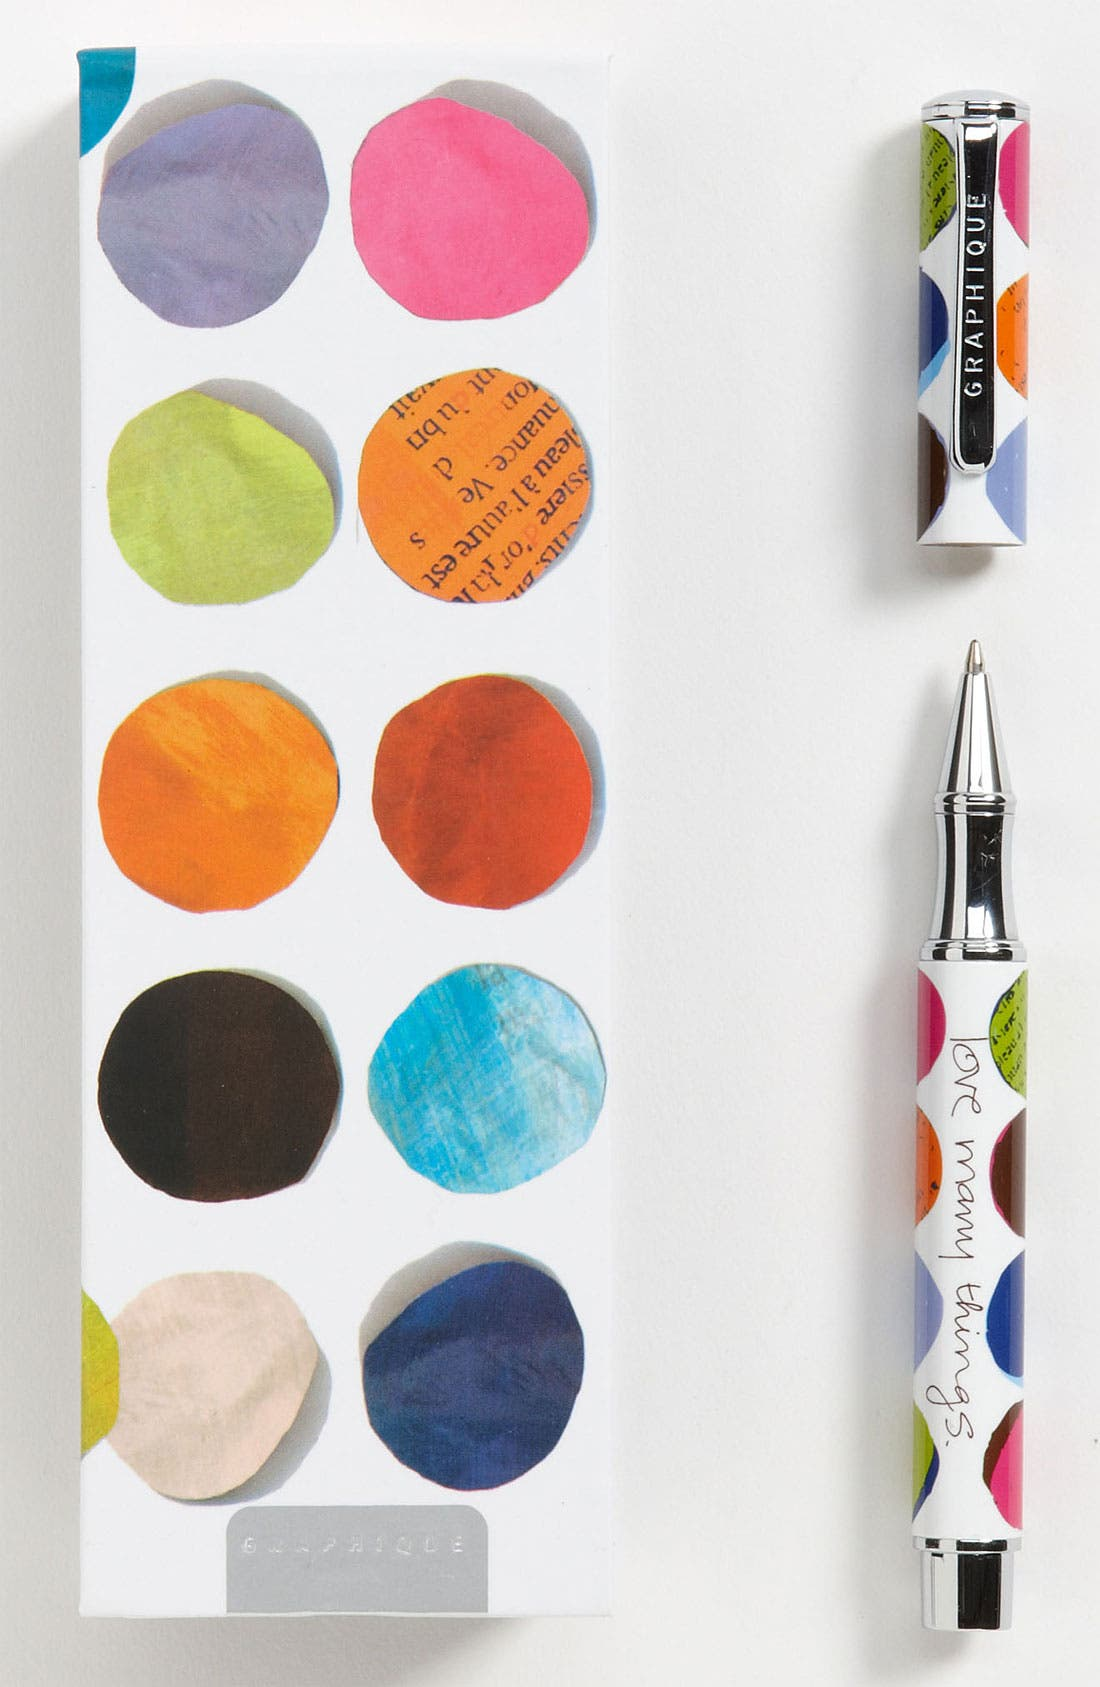 Main Image - Graphique de France 'Koco - Love Many Things' Rollerball Pen